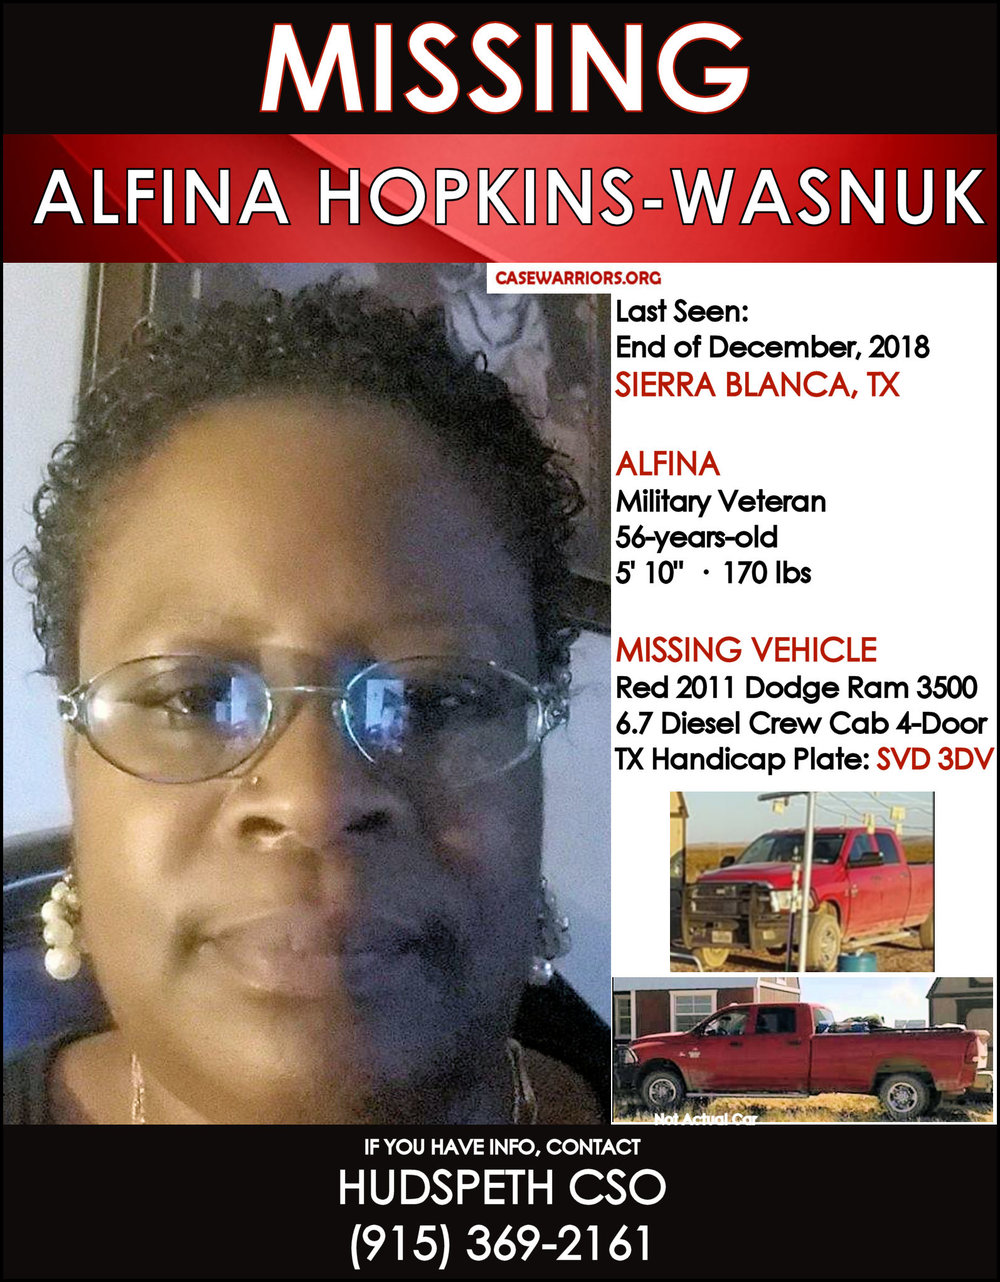 ALFINA HOPKINS-WASNUK